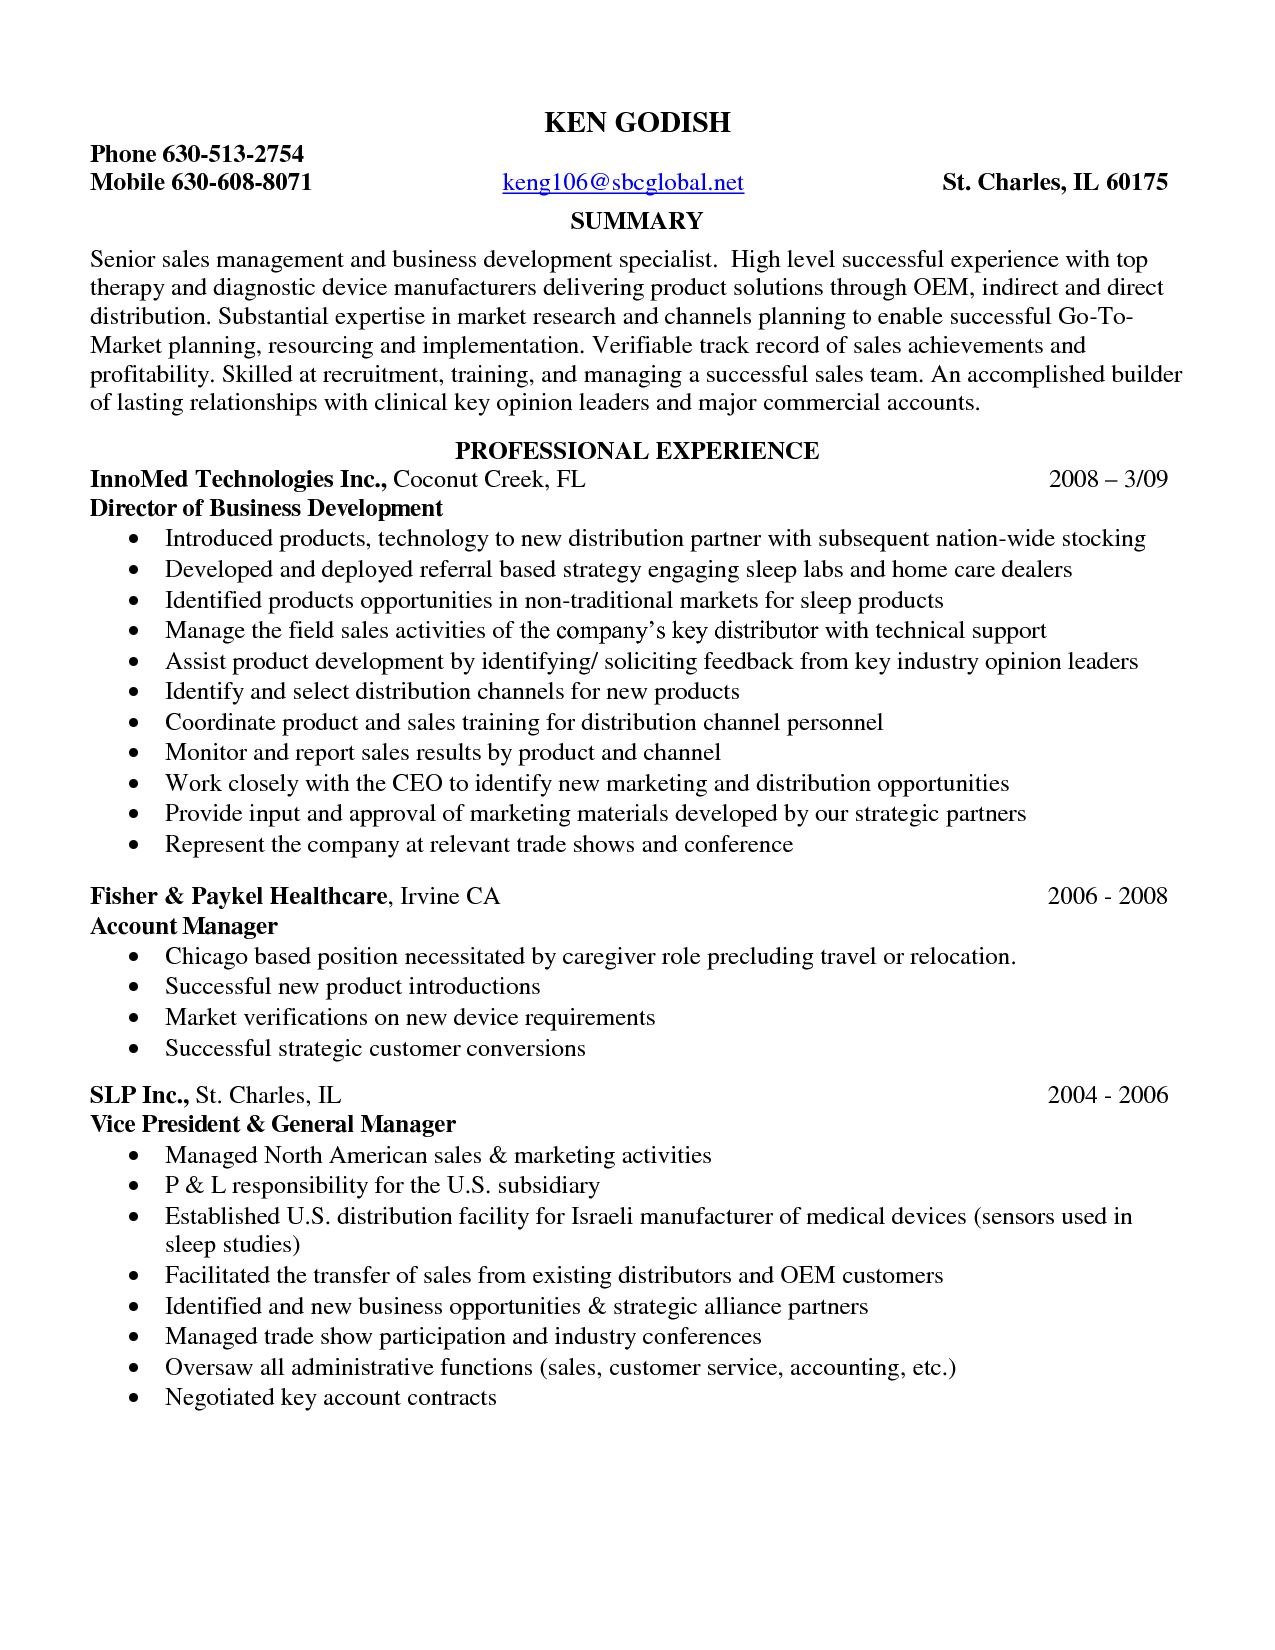 Summary Statement Resume Examples Sample Resume Entry Level Pharmaceutical Sales Sample Resume Entry